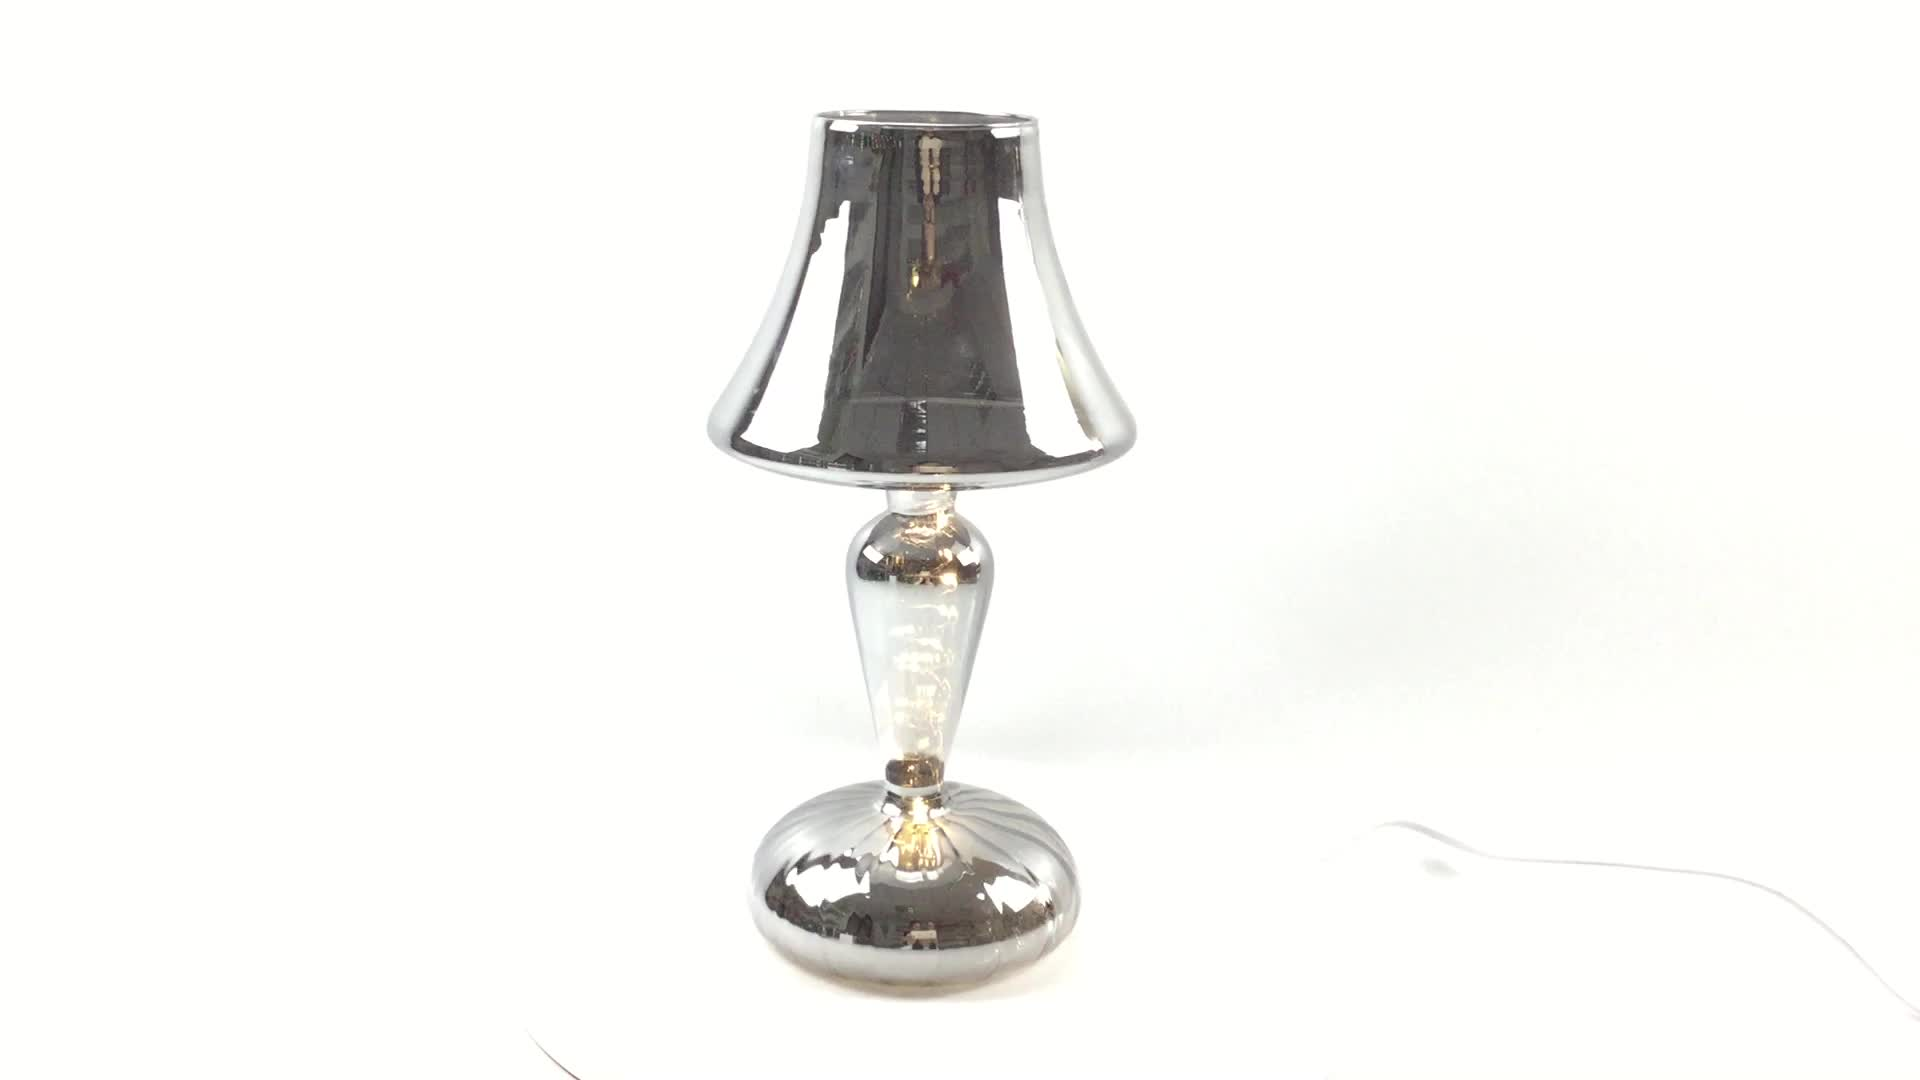 Wholesale Handmade Blown glass lamp Warm white light for home decoration and gift for holidays. 3xAA batteries not included.